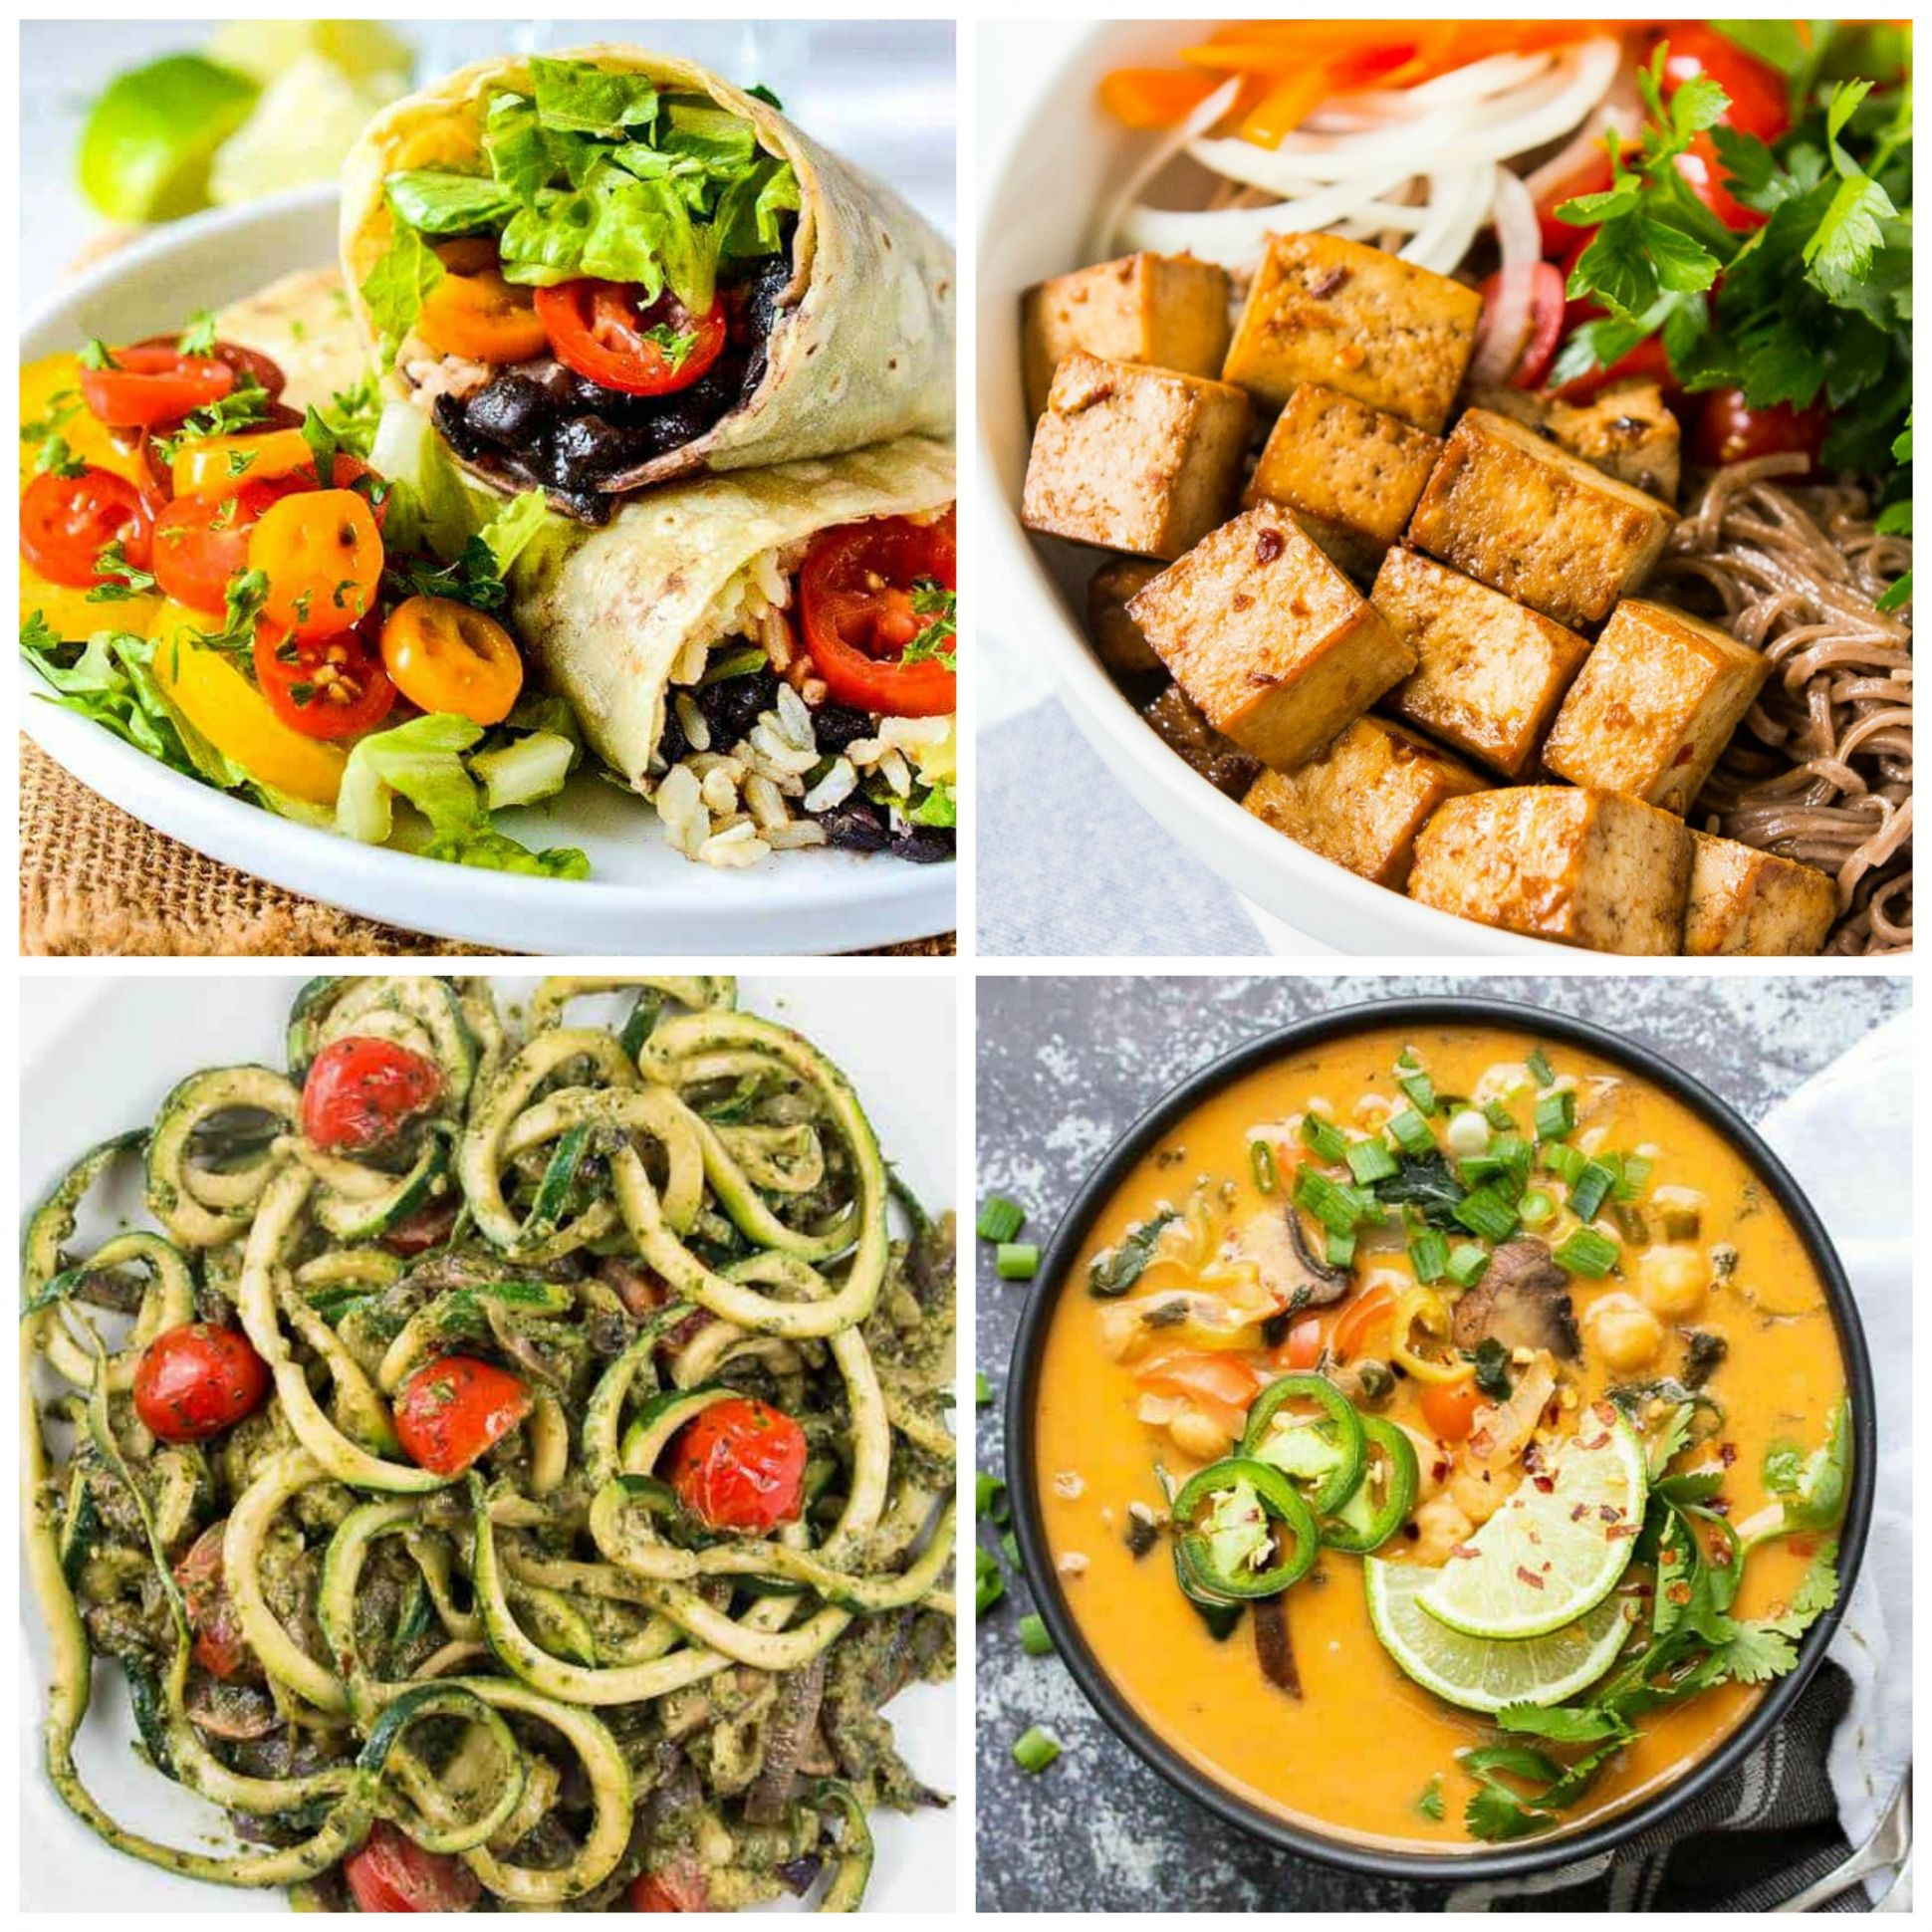 8 AMAZING Vegan Meals for Weight Loss (Gluten-Free & Low-Calorie) - Recipes For Weight Loss Uk